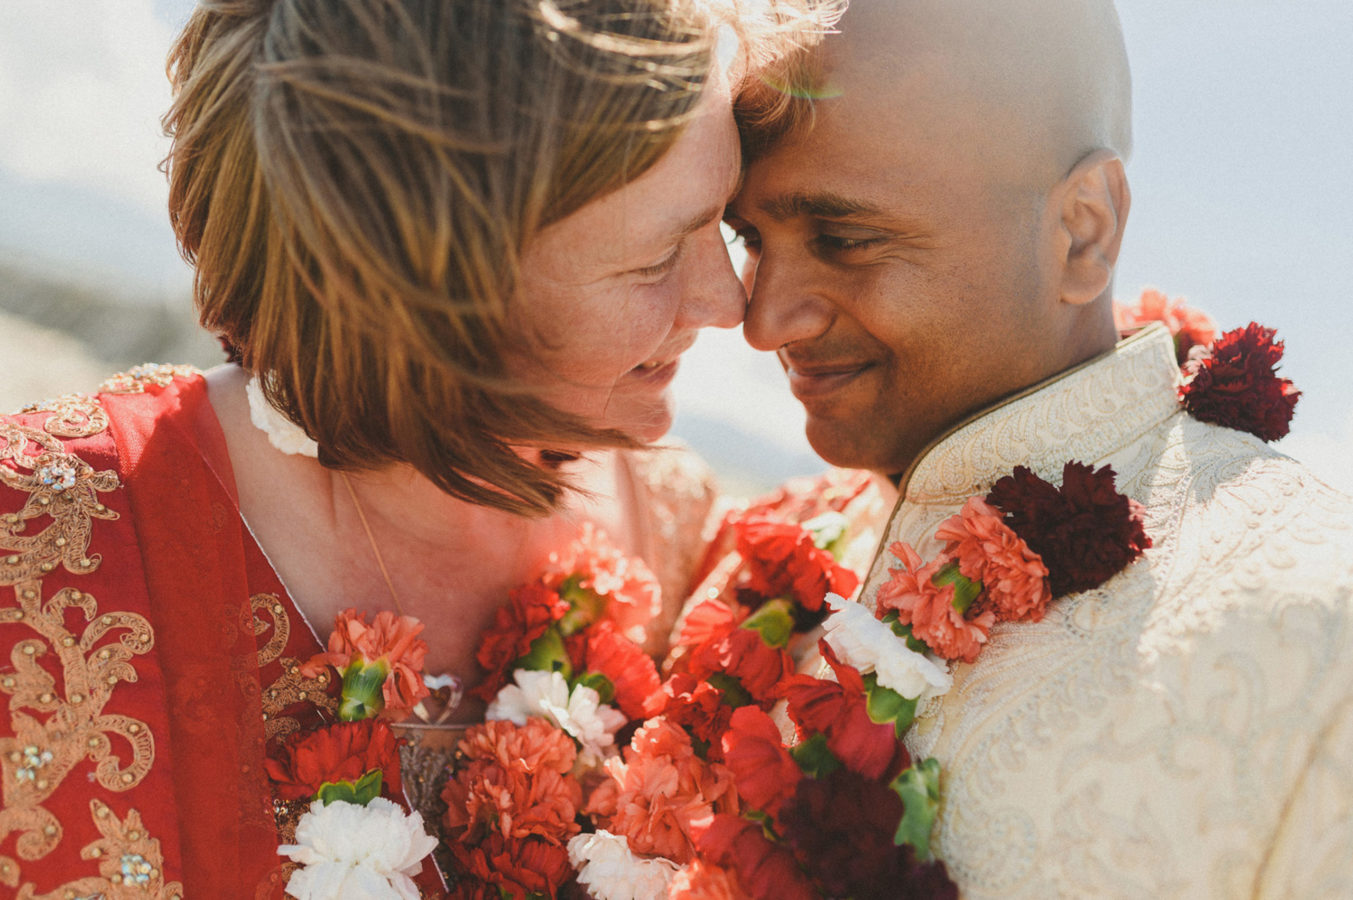 close up of mixed race couple with colourful garlands on their wedding day